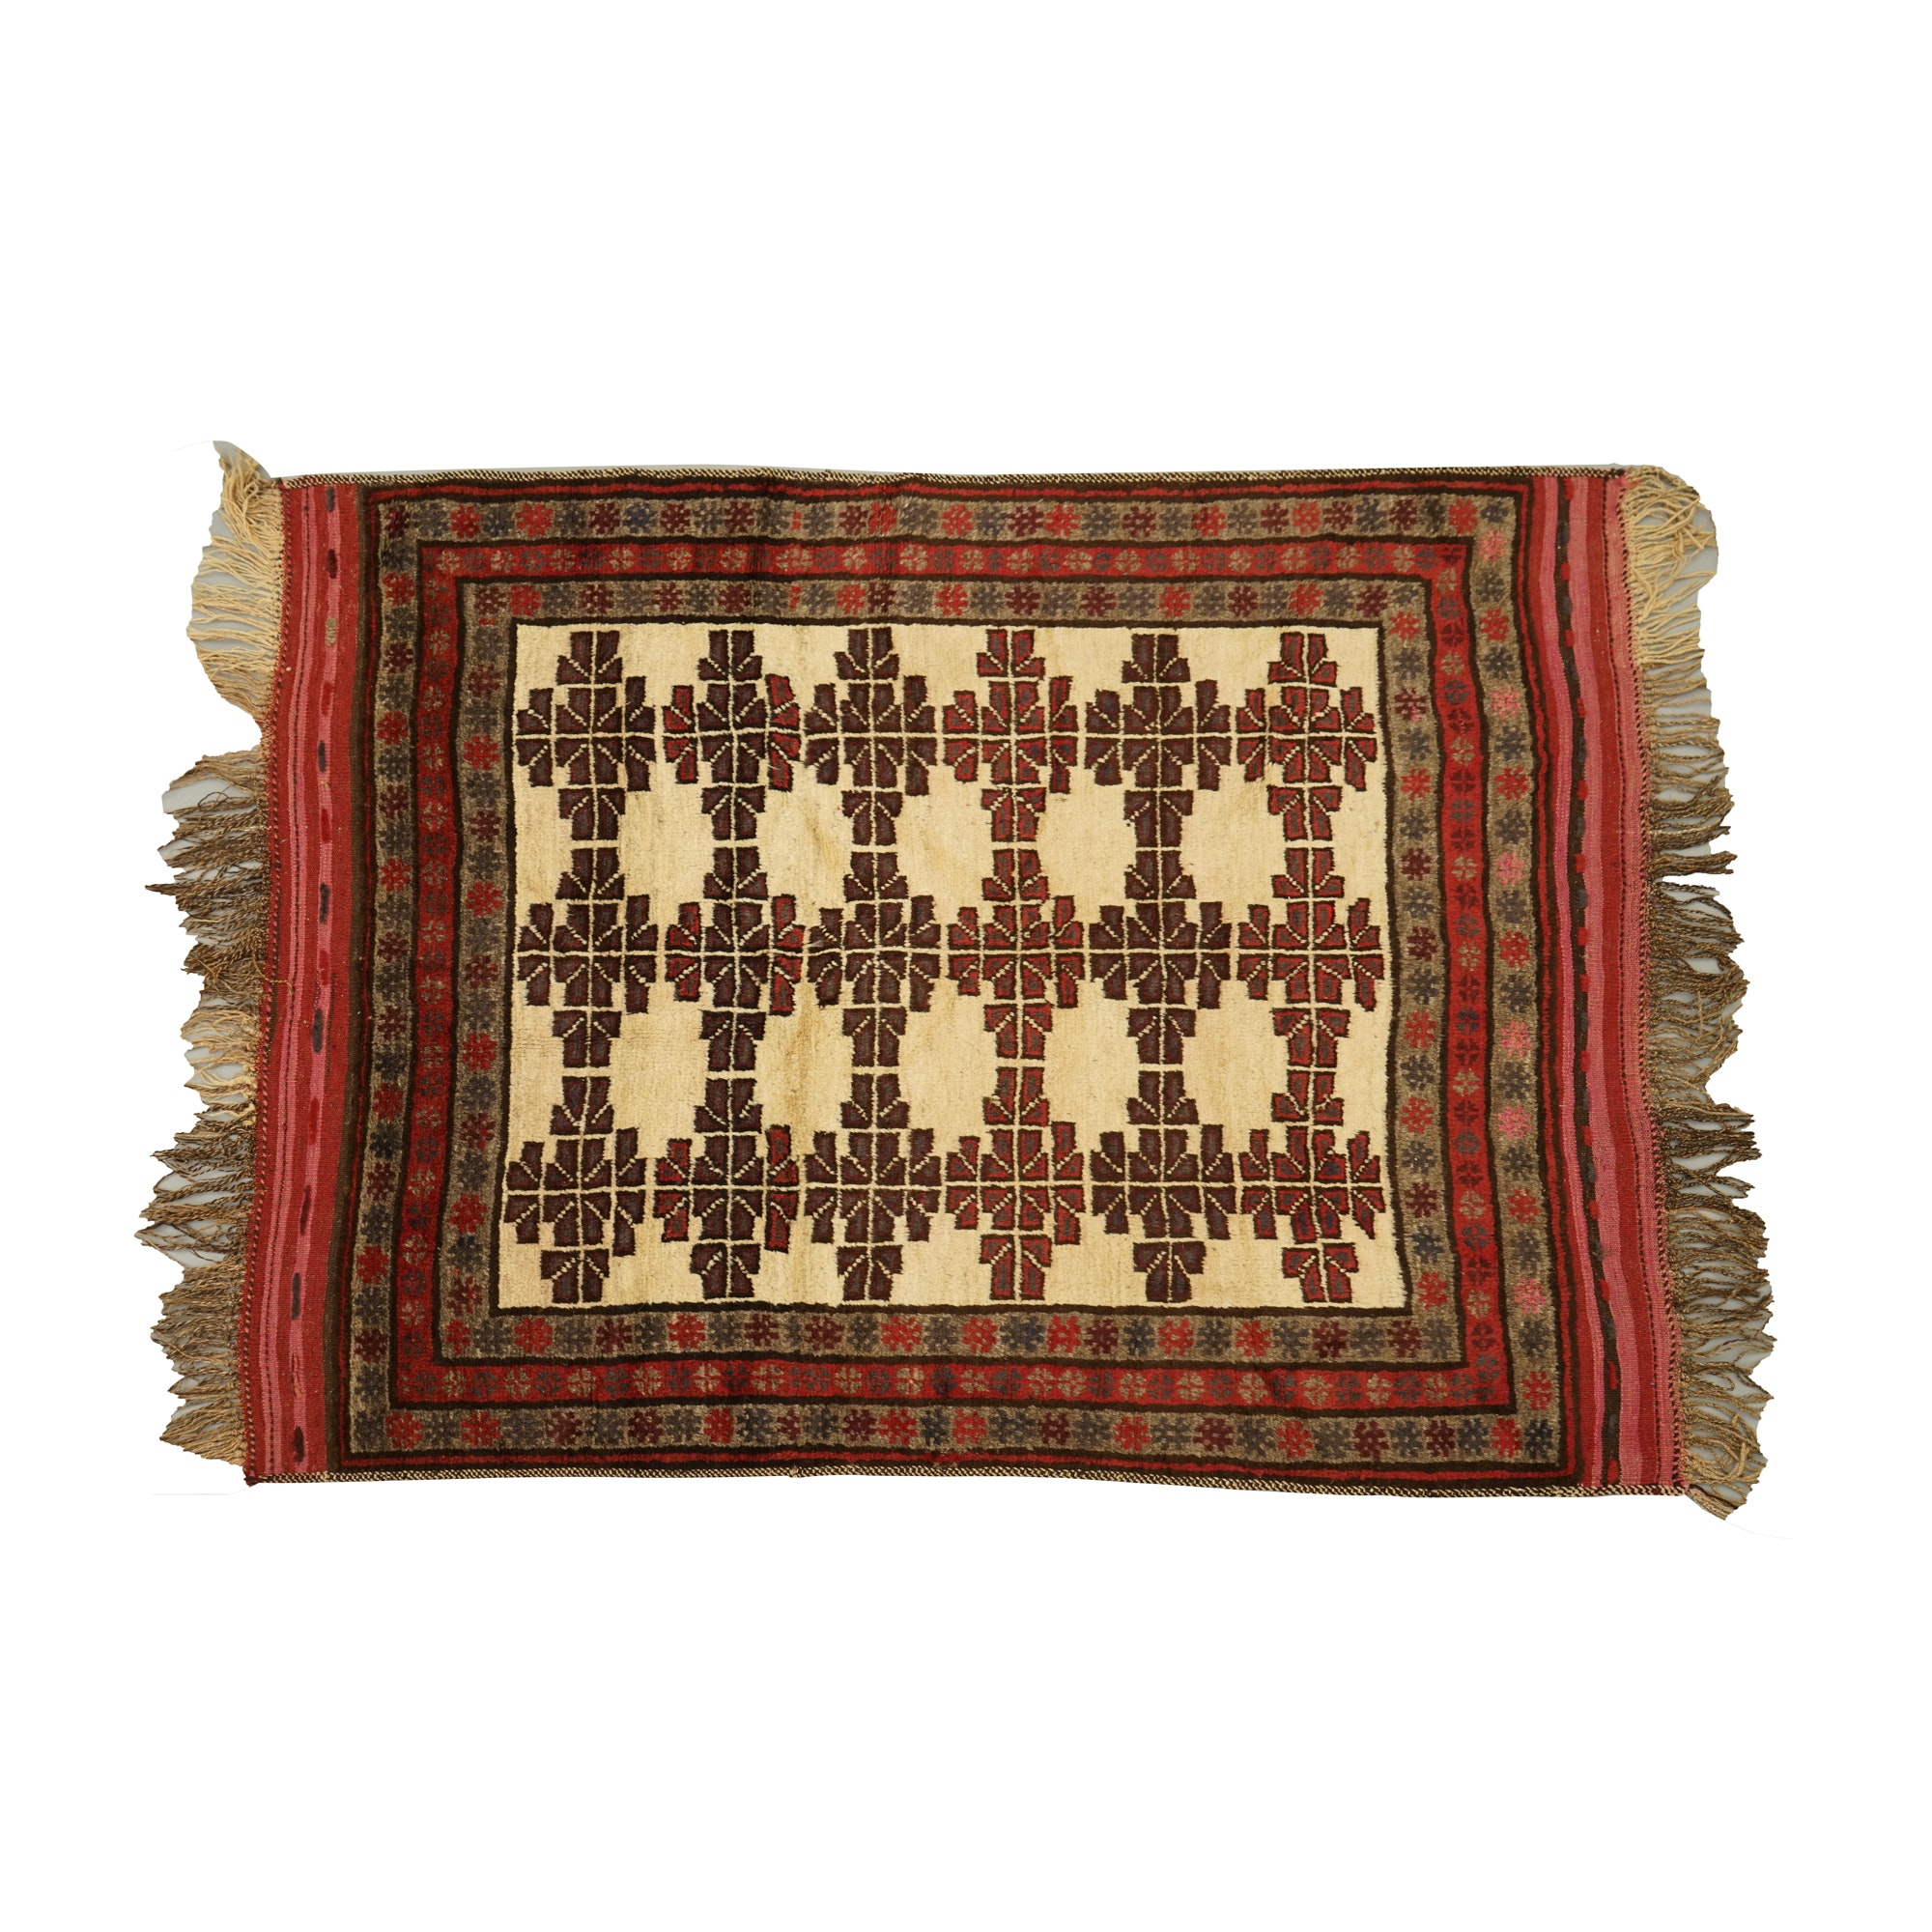 Hand-Knotted Central Asian Tribal Wool Area Rug